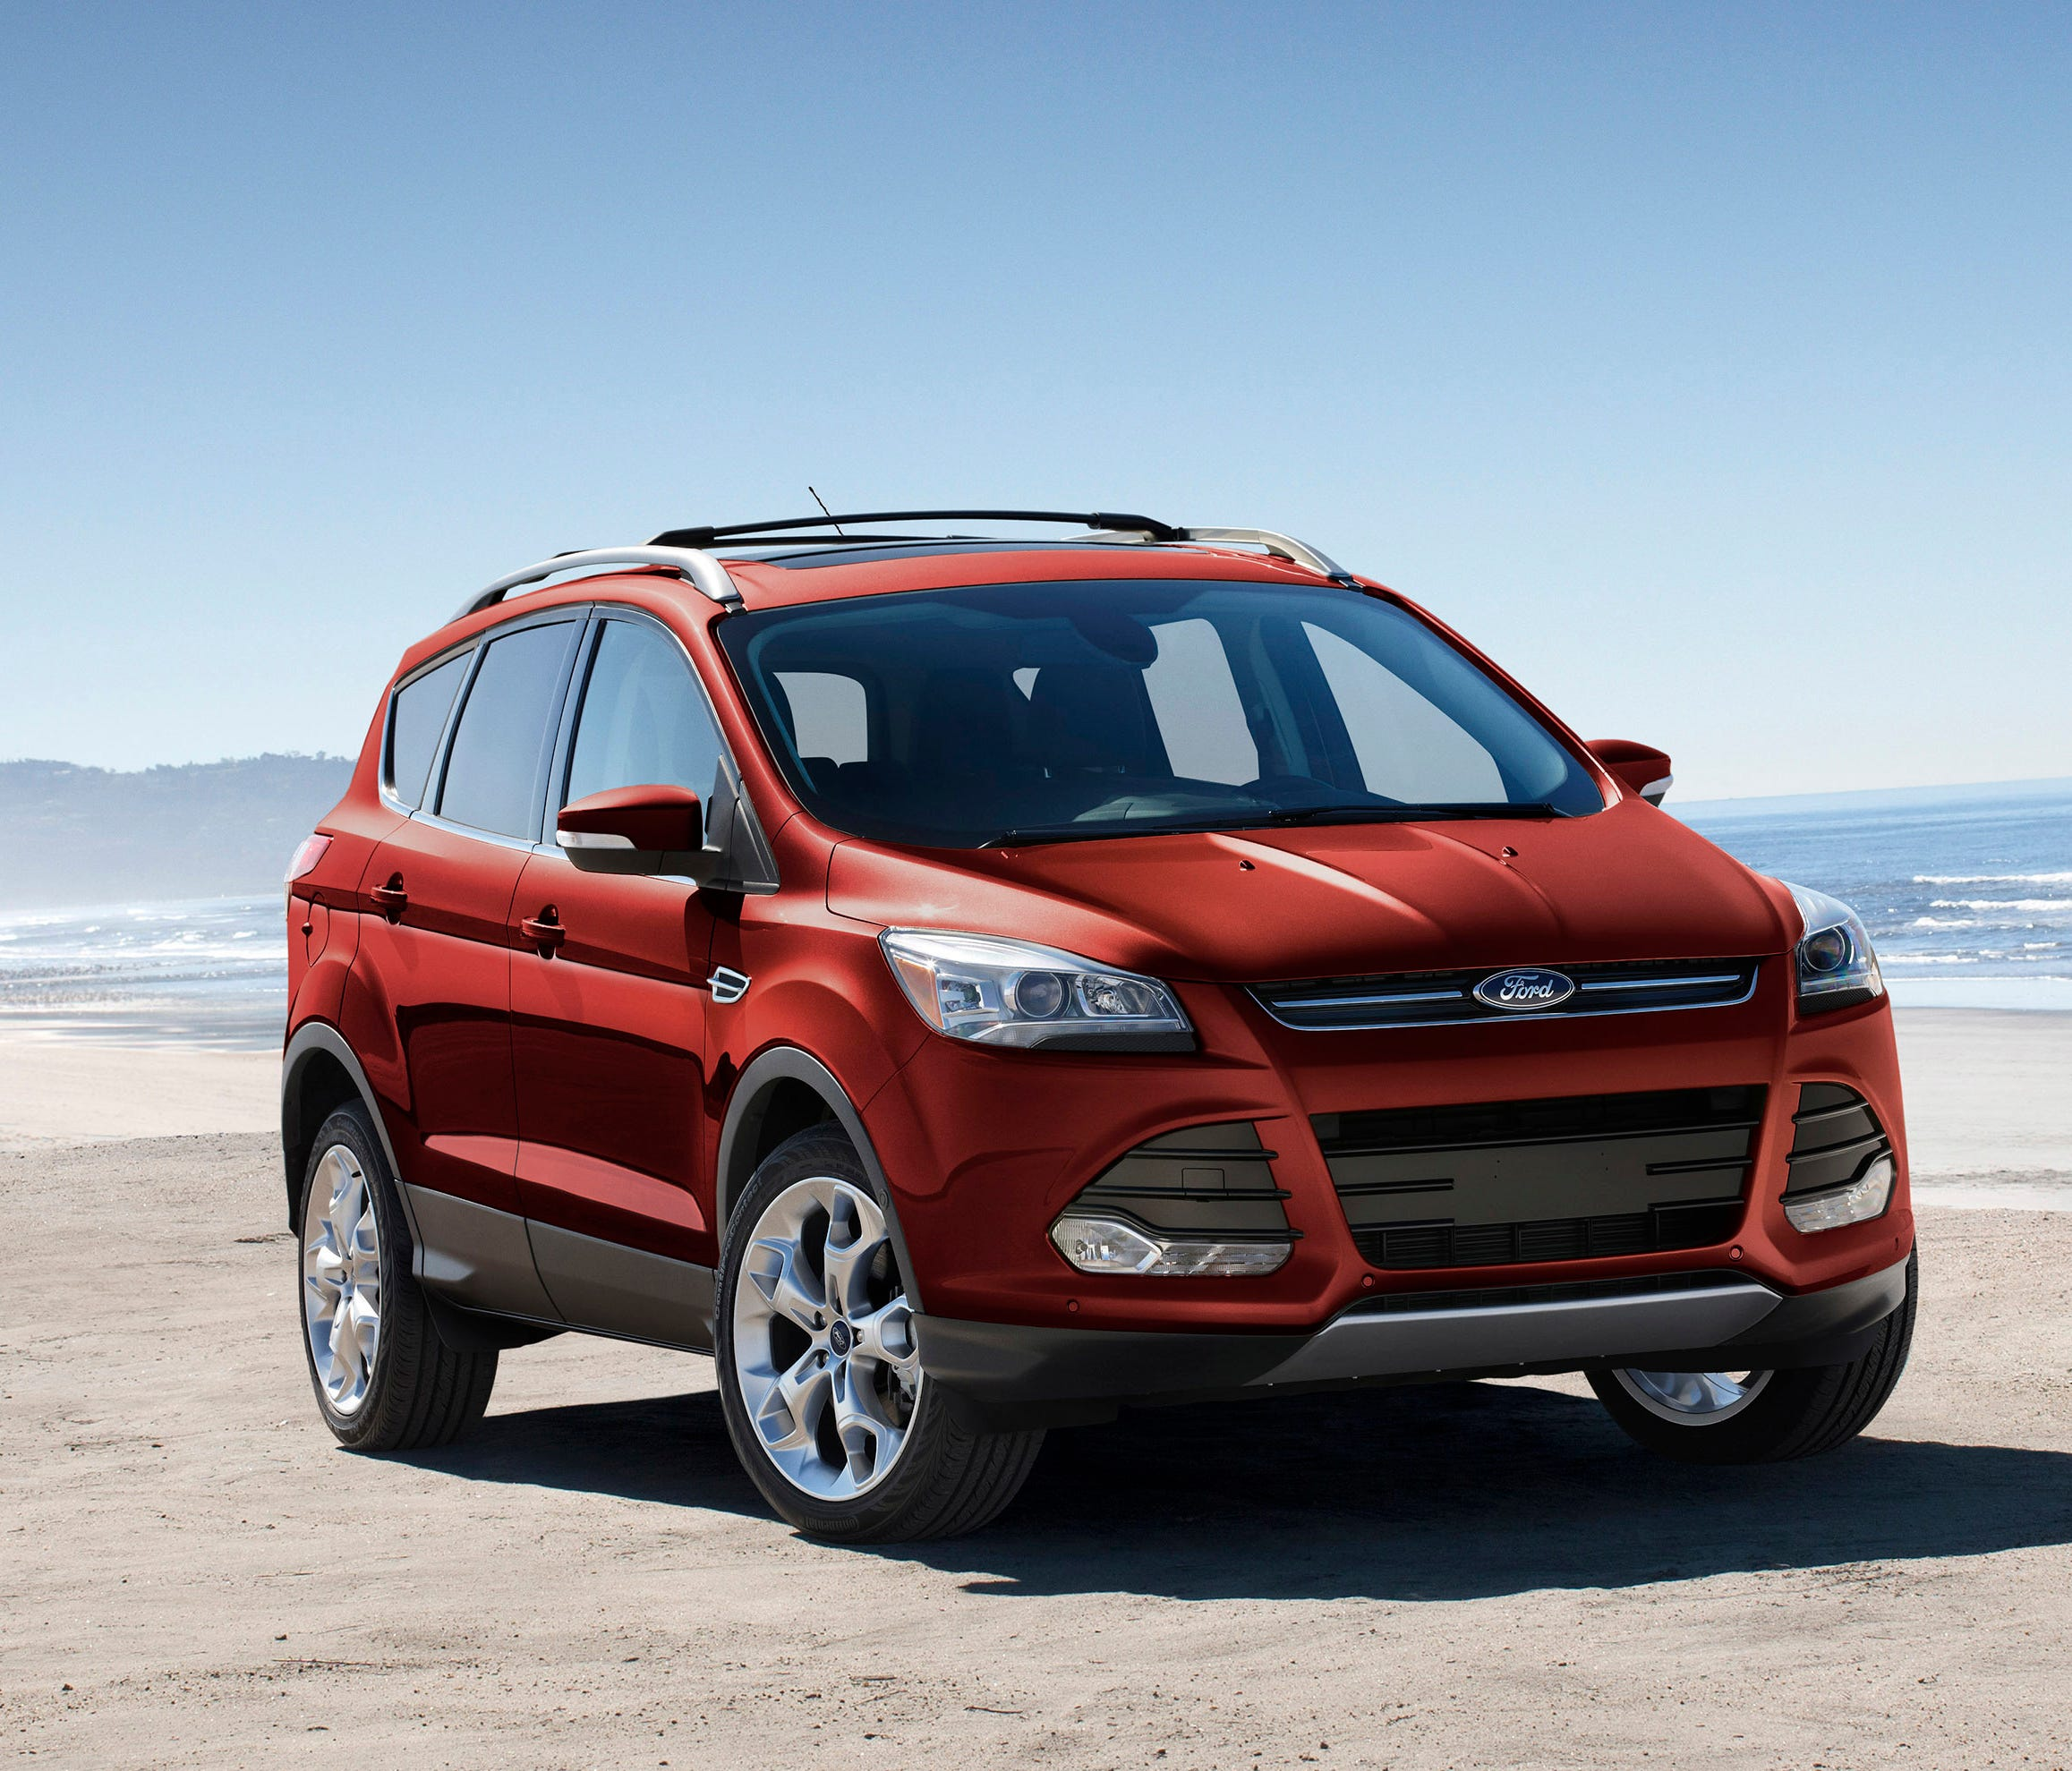 This undated photo provided by Ford shows a 2015 Ford Escape, one of the used Ford and Lincoln vehicles available through Canvas, a car subscription service created by Ford and now operating in Los Angeles and San Francisco. Car subscription services